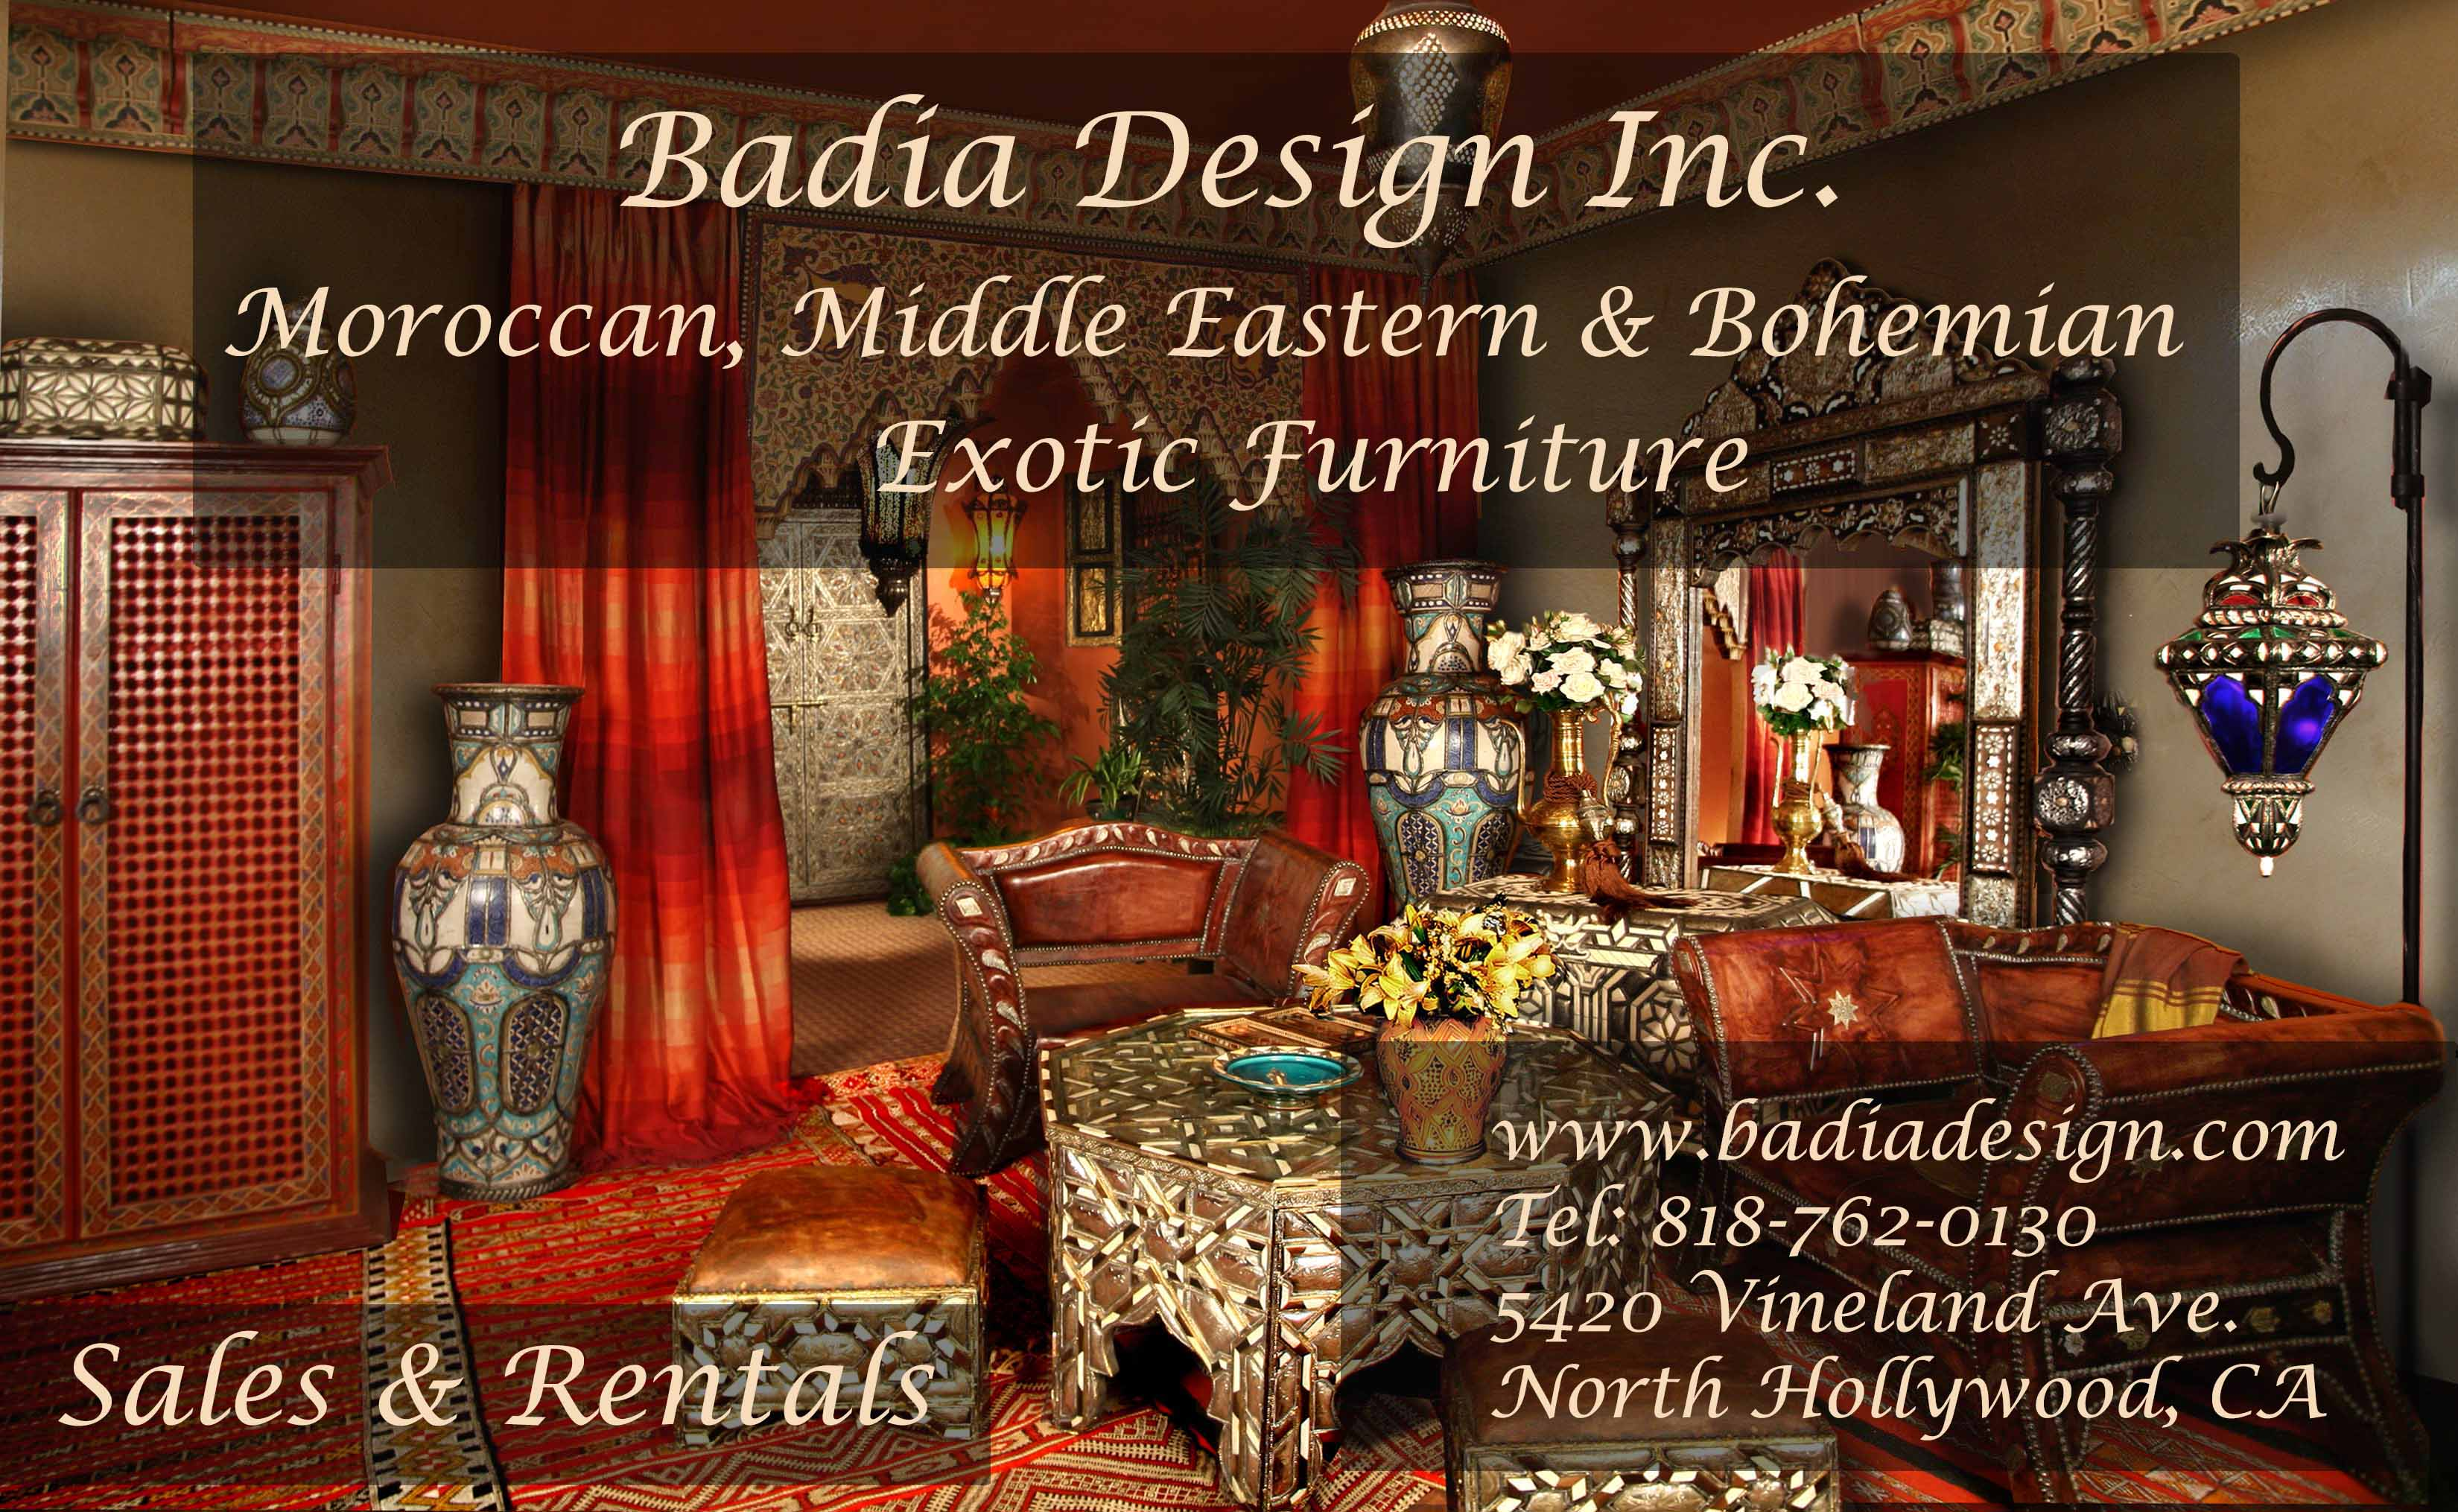 Moroccan party rental, Moroccan furniture, Bohemian style furniture, Bohemian home furniture, Middle Eastern furniture store, Moroccan Home Decor Imports, Moroccan interior decor, Moroccan Furniture and Accessories Los Angeles, best furniture store near me, Moroccan Style Furniture, Middle Eastern style furniture, Bohemian style furniture, Moroccan furniture Los Angeles, furniture sale, Moroccan home decor, wooden tables, chairs, wooden chairs, brass chandeliers, silver chandelier, wedding gifts, Moroccan party rental Los Angeles, living room furniture, Moroccan living room furniture, Moroccan floor tile, water fountain, ceramic plates, ceramic bowls, brass lantern, silver lantern, ceramic novelties, tea glasses, Moroccan tea glasses, pouf, ottoman, Moroccan pouf, Moroccan ottoman, outdoor furniture, Moroccan outdoor furniture, patio furniture, African rugs, Mediterranean style furniture, Mediterranean furniture, Mediterranean home decor, interior design, Moroccan interior design, interior designer, home interior design, home interior designer, dishes, Moroccan tiles, silver plated, gold plated